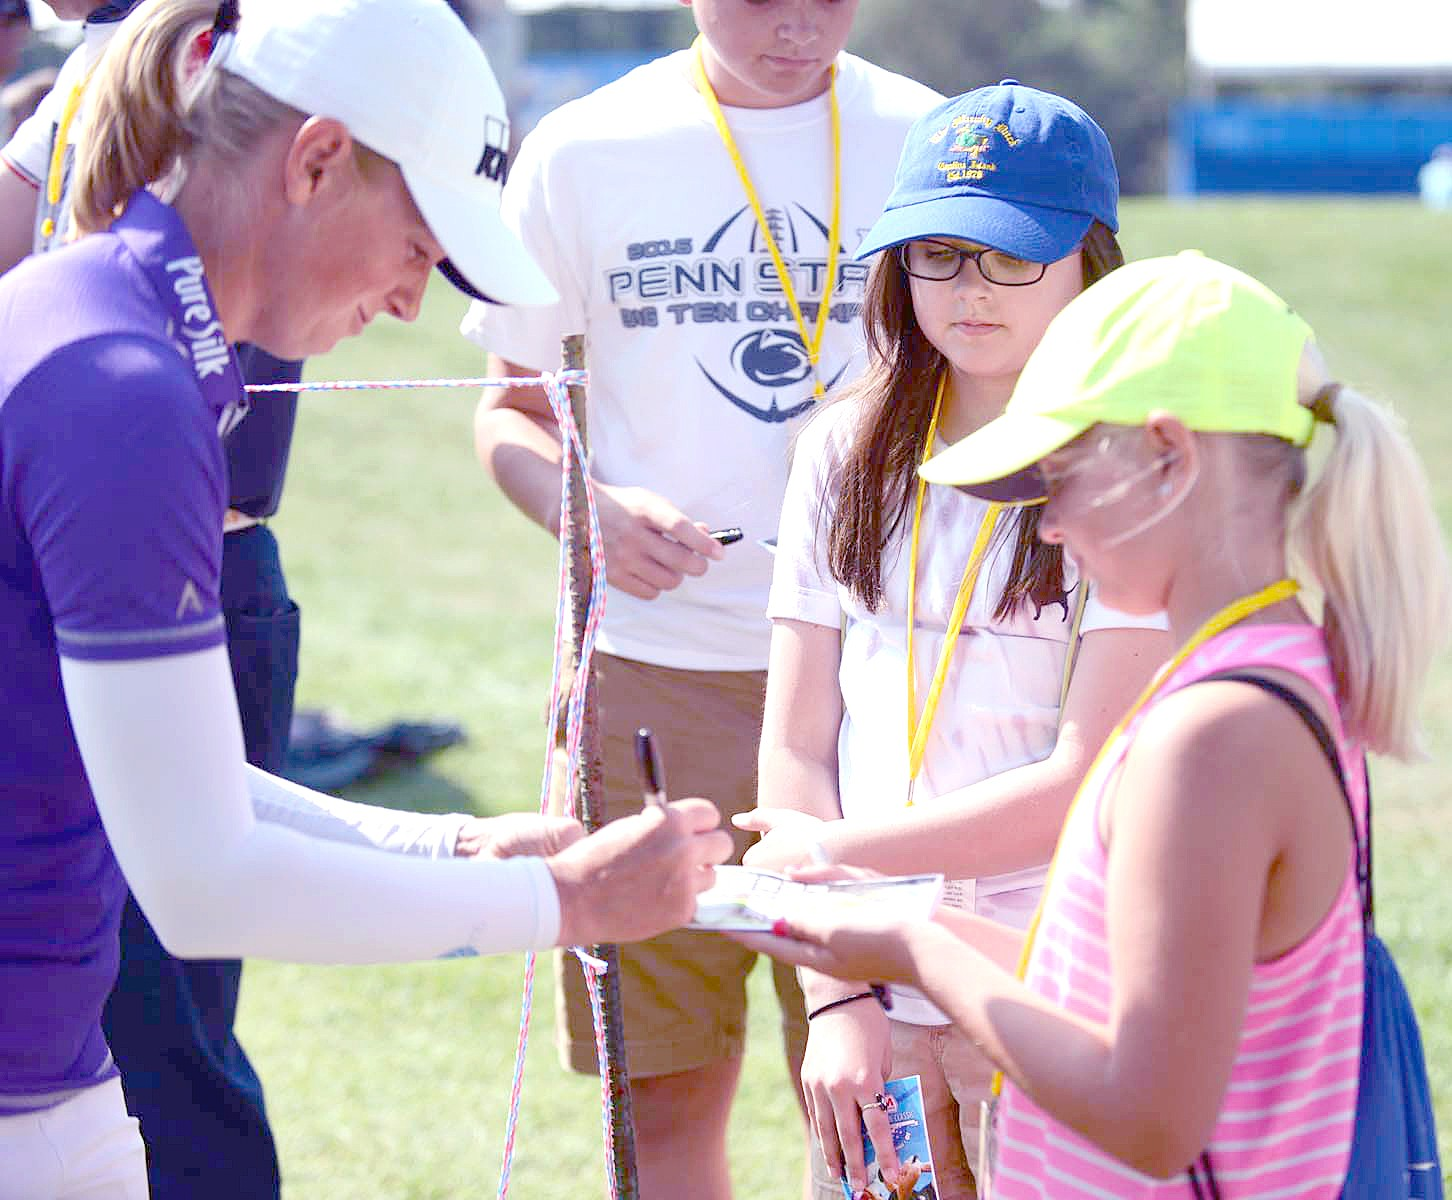 Team USA Assistant Captain Stacy Lewis signs an autograph while here for the Marathon Classic. Team USA is down one match heading into Sunday's play. (File photo by Getty Images courtesy LPGA)